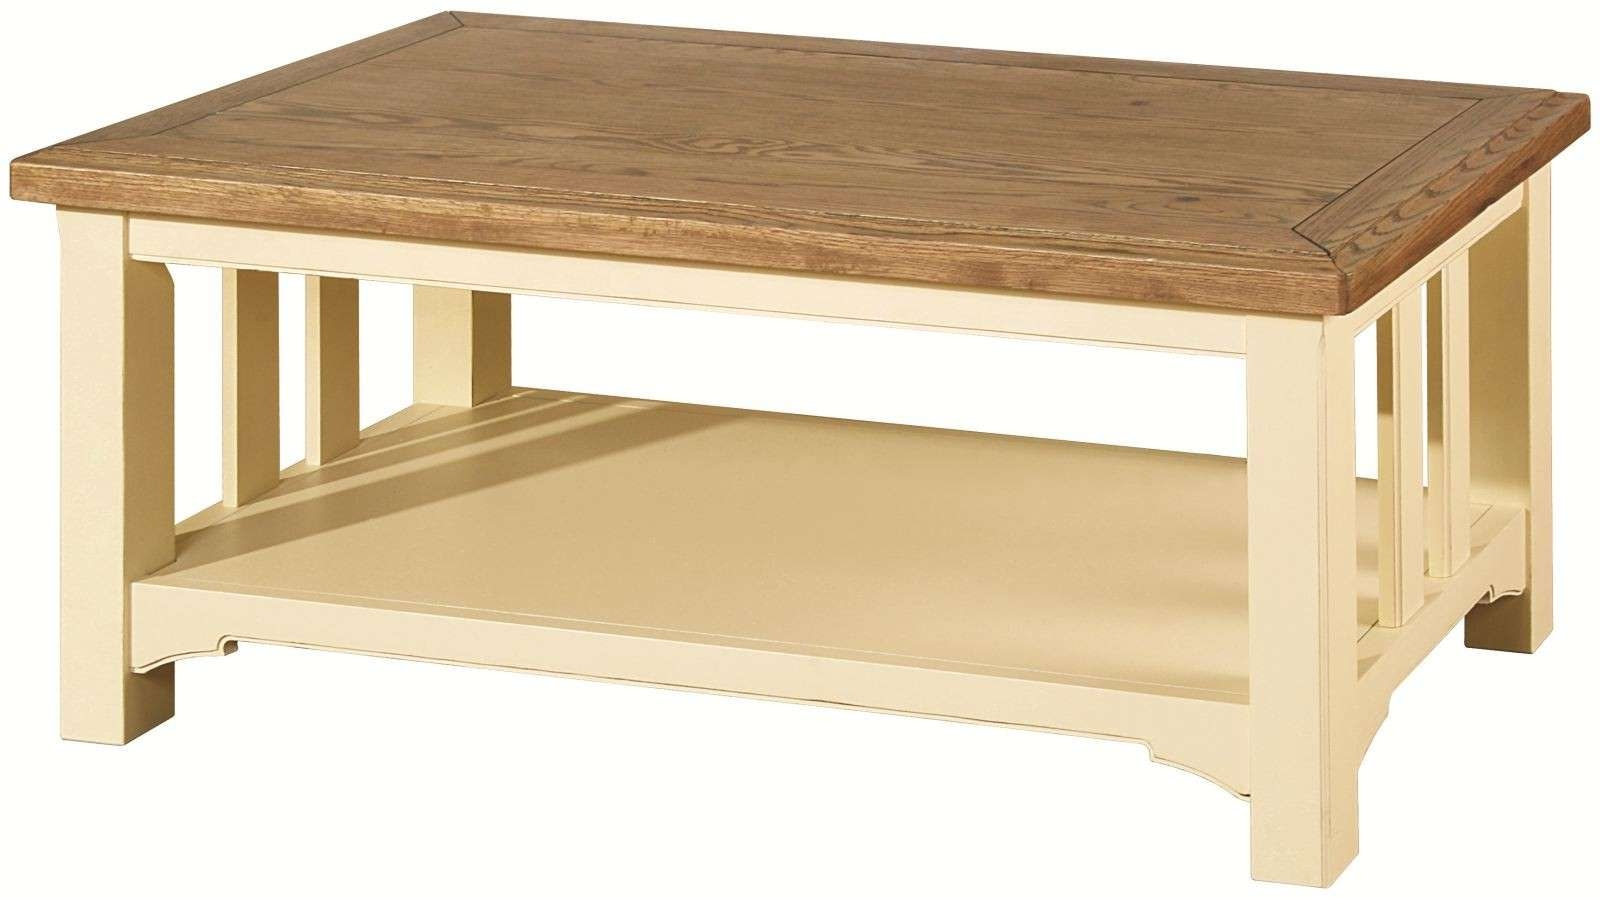 Top Coffee Table With Shelf Plans – Table With Shelves Underneath Intended For Most Recently Released Coffee Tables With Shelves (View 5 of 20)